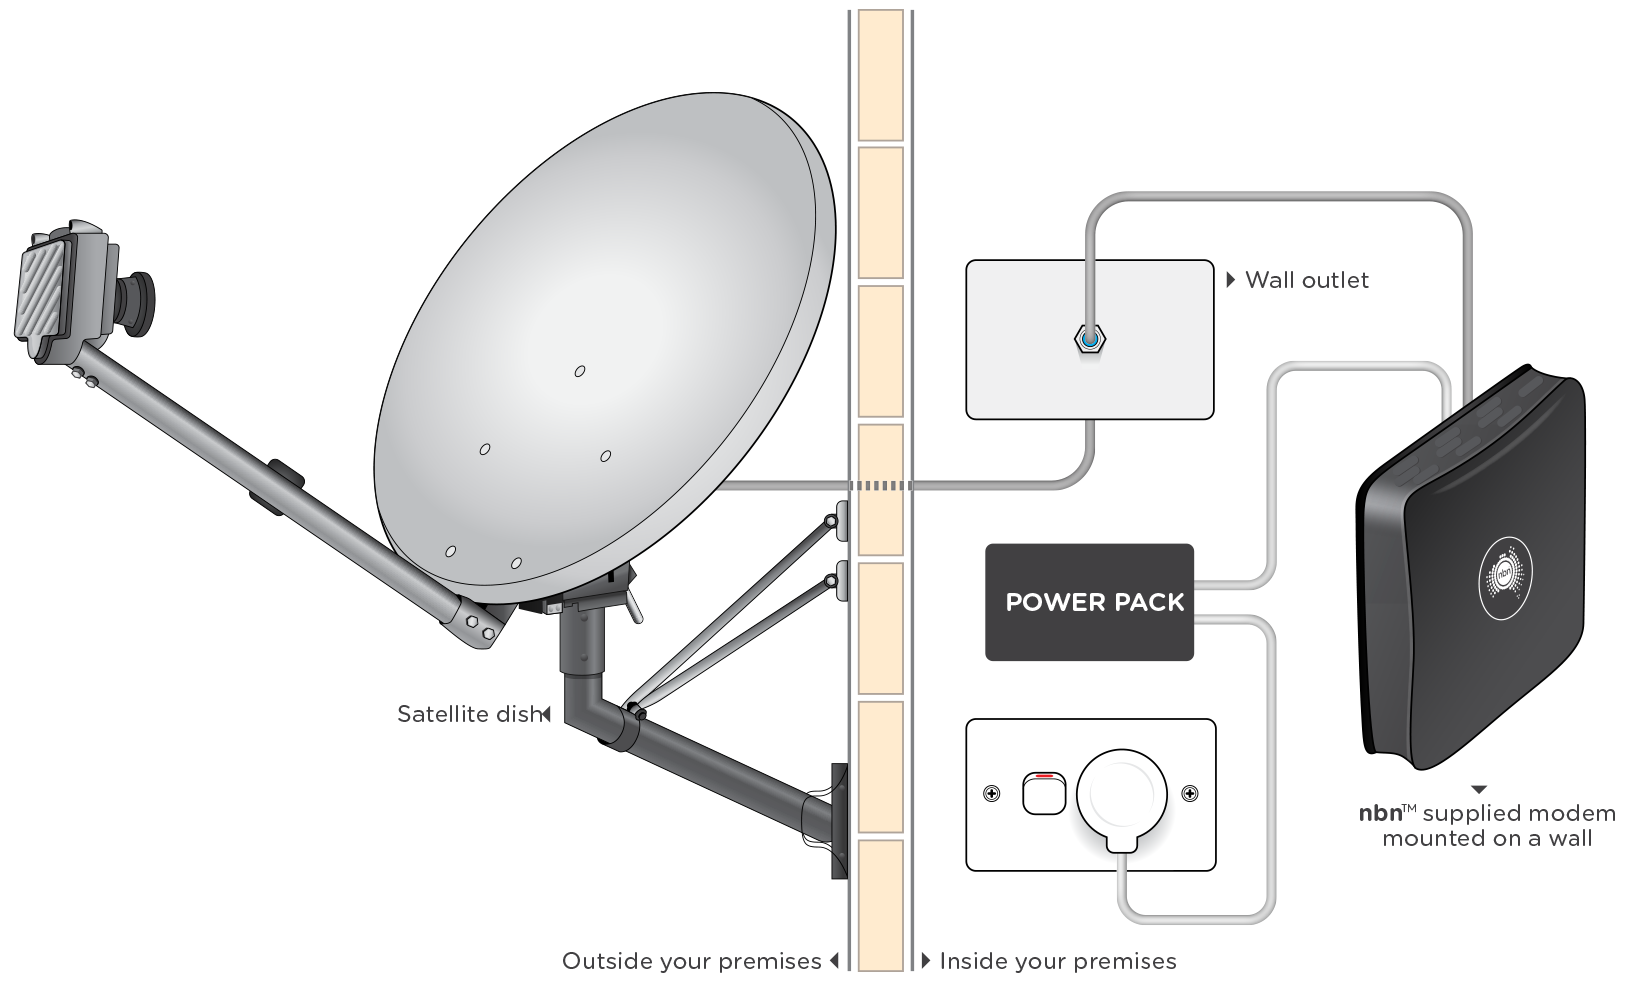 Nbn Sky Muster Satellite Service Explained Nbn